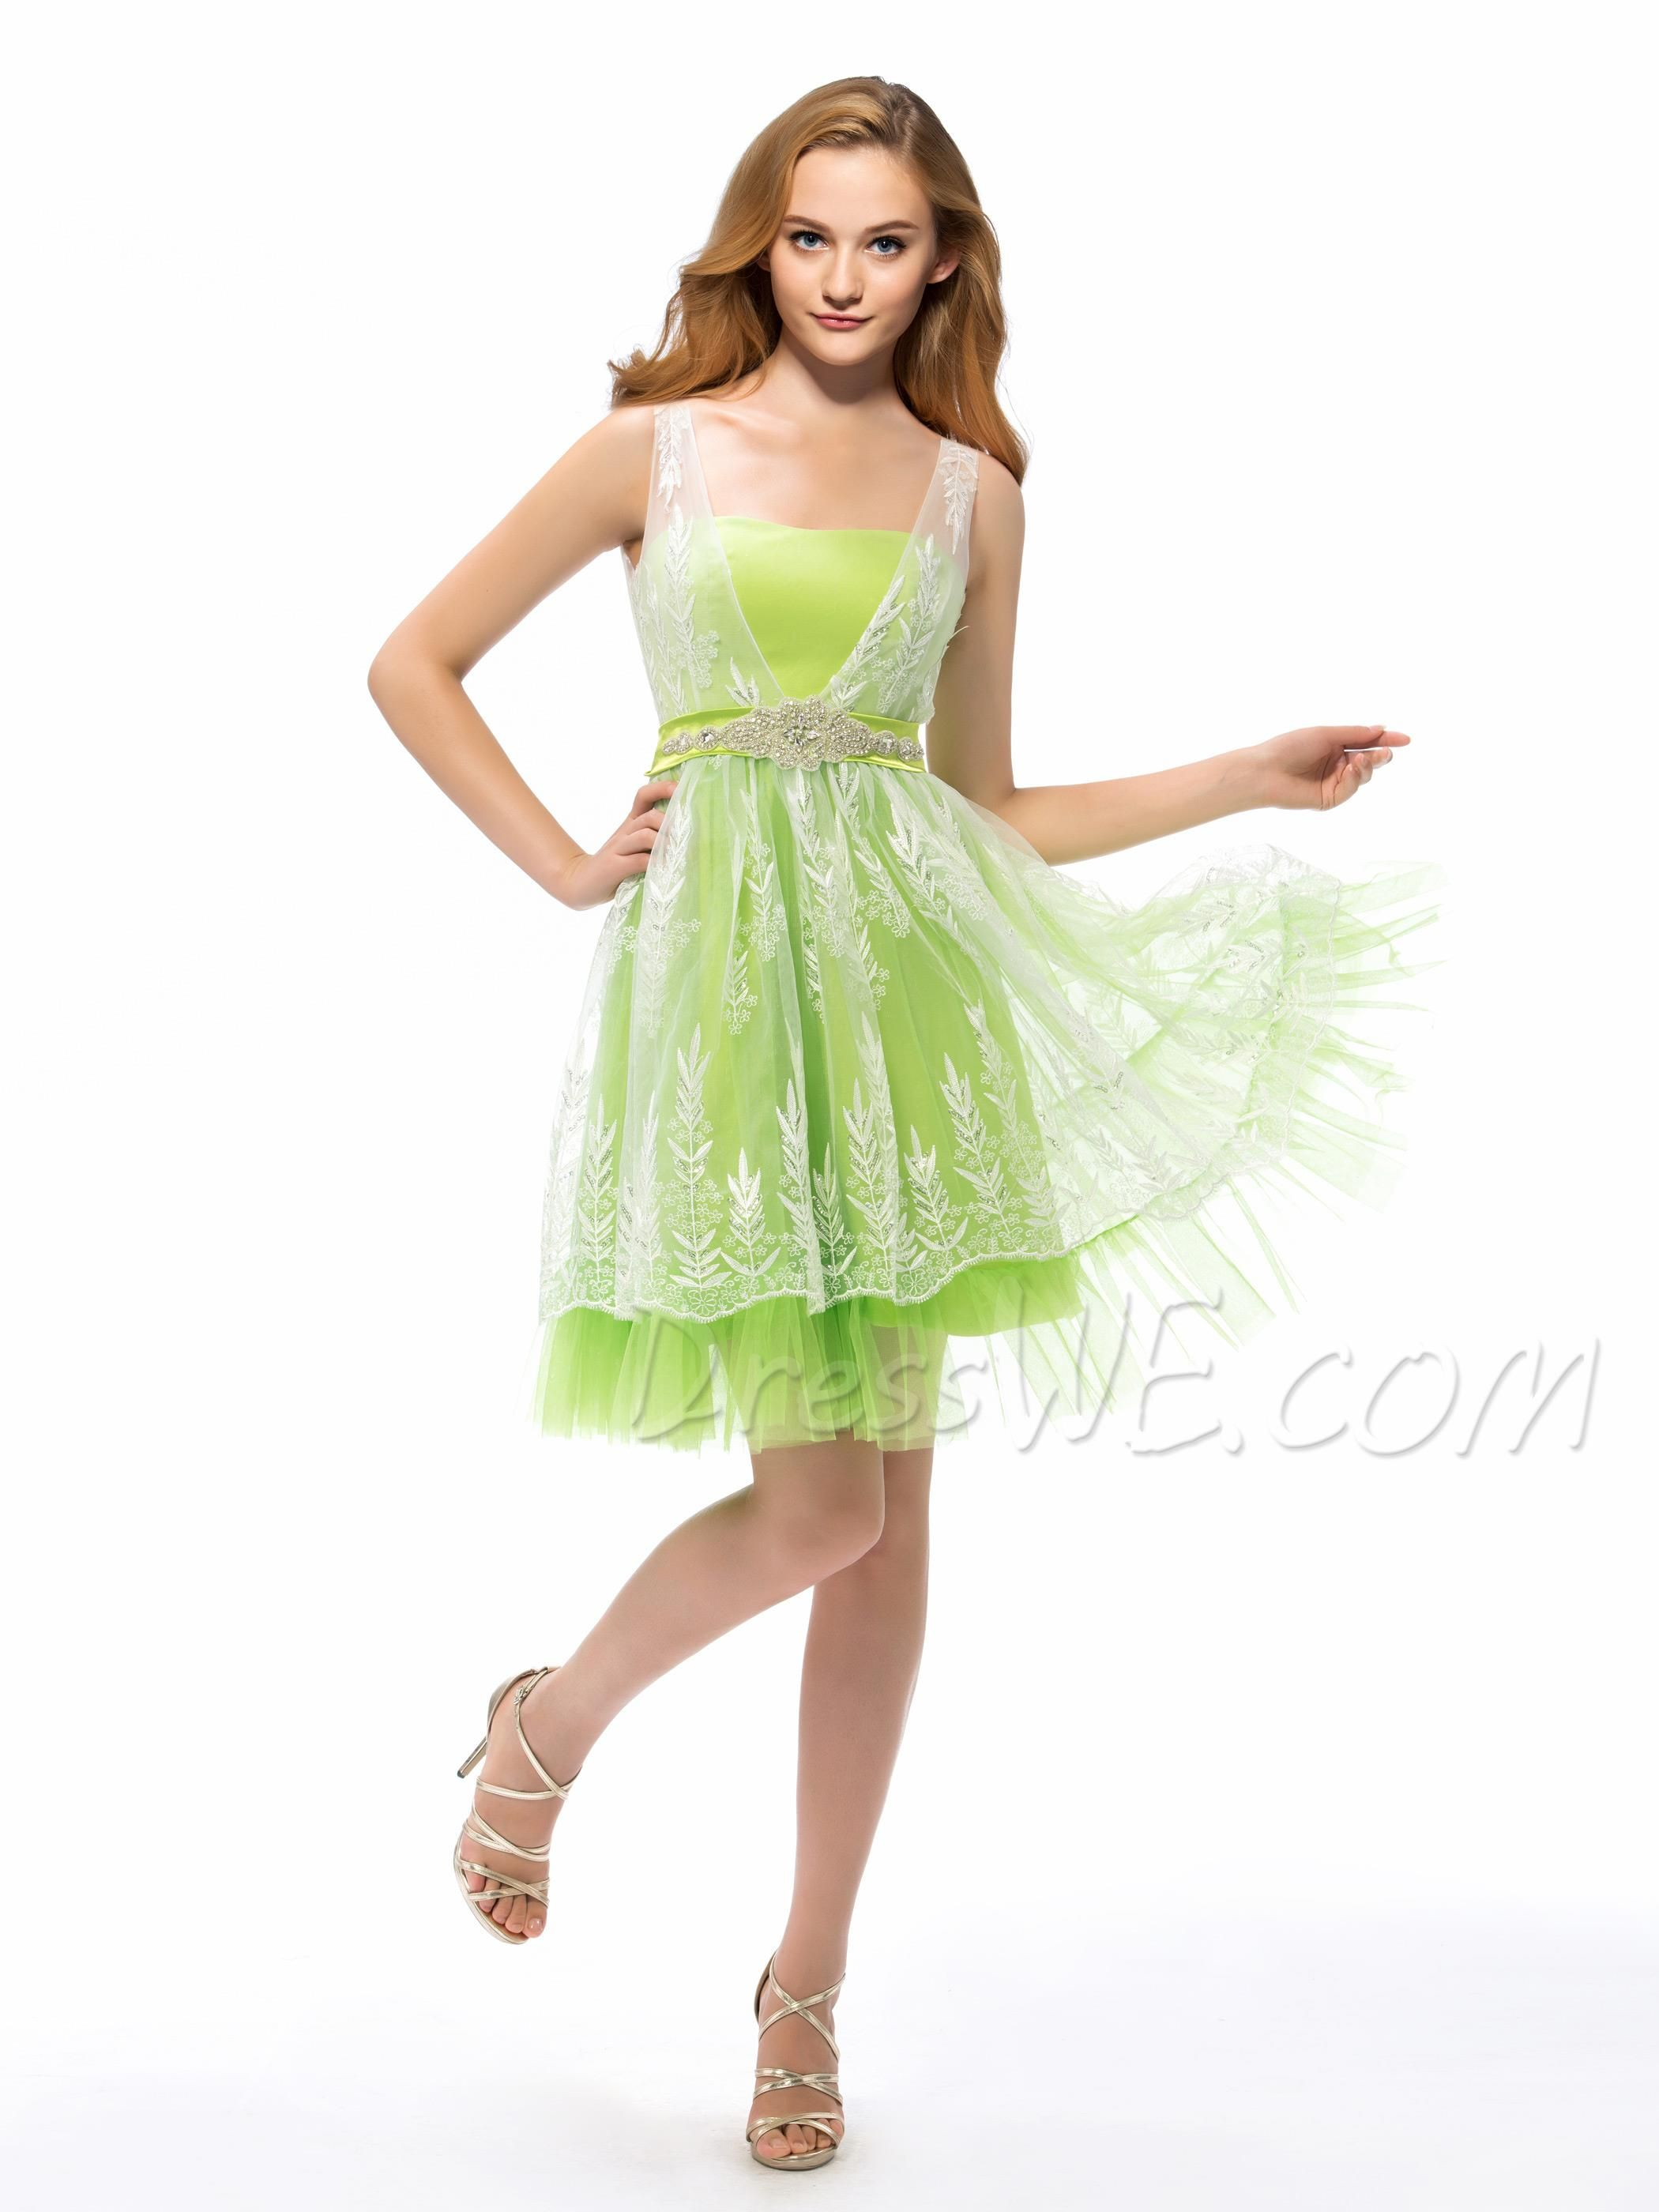 BuyModern Straps Bowknot Back Crystal Homecoming/Sweet 16 Dress   Online, Dresswe.Com offer high quality fashion,Price: USD$102.39